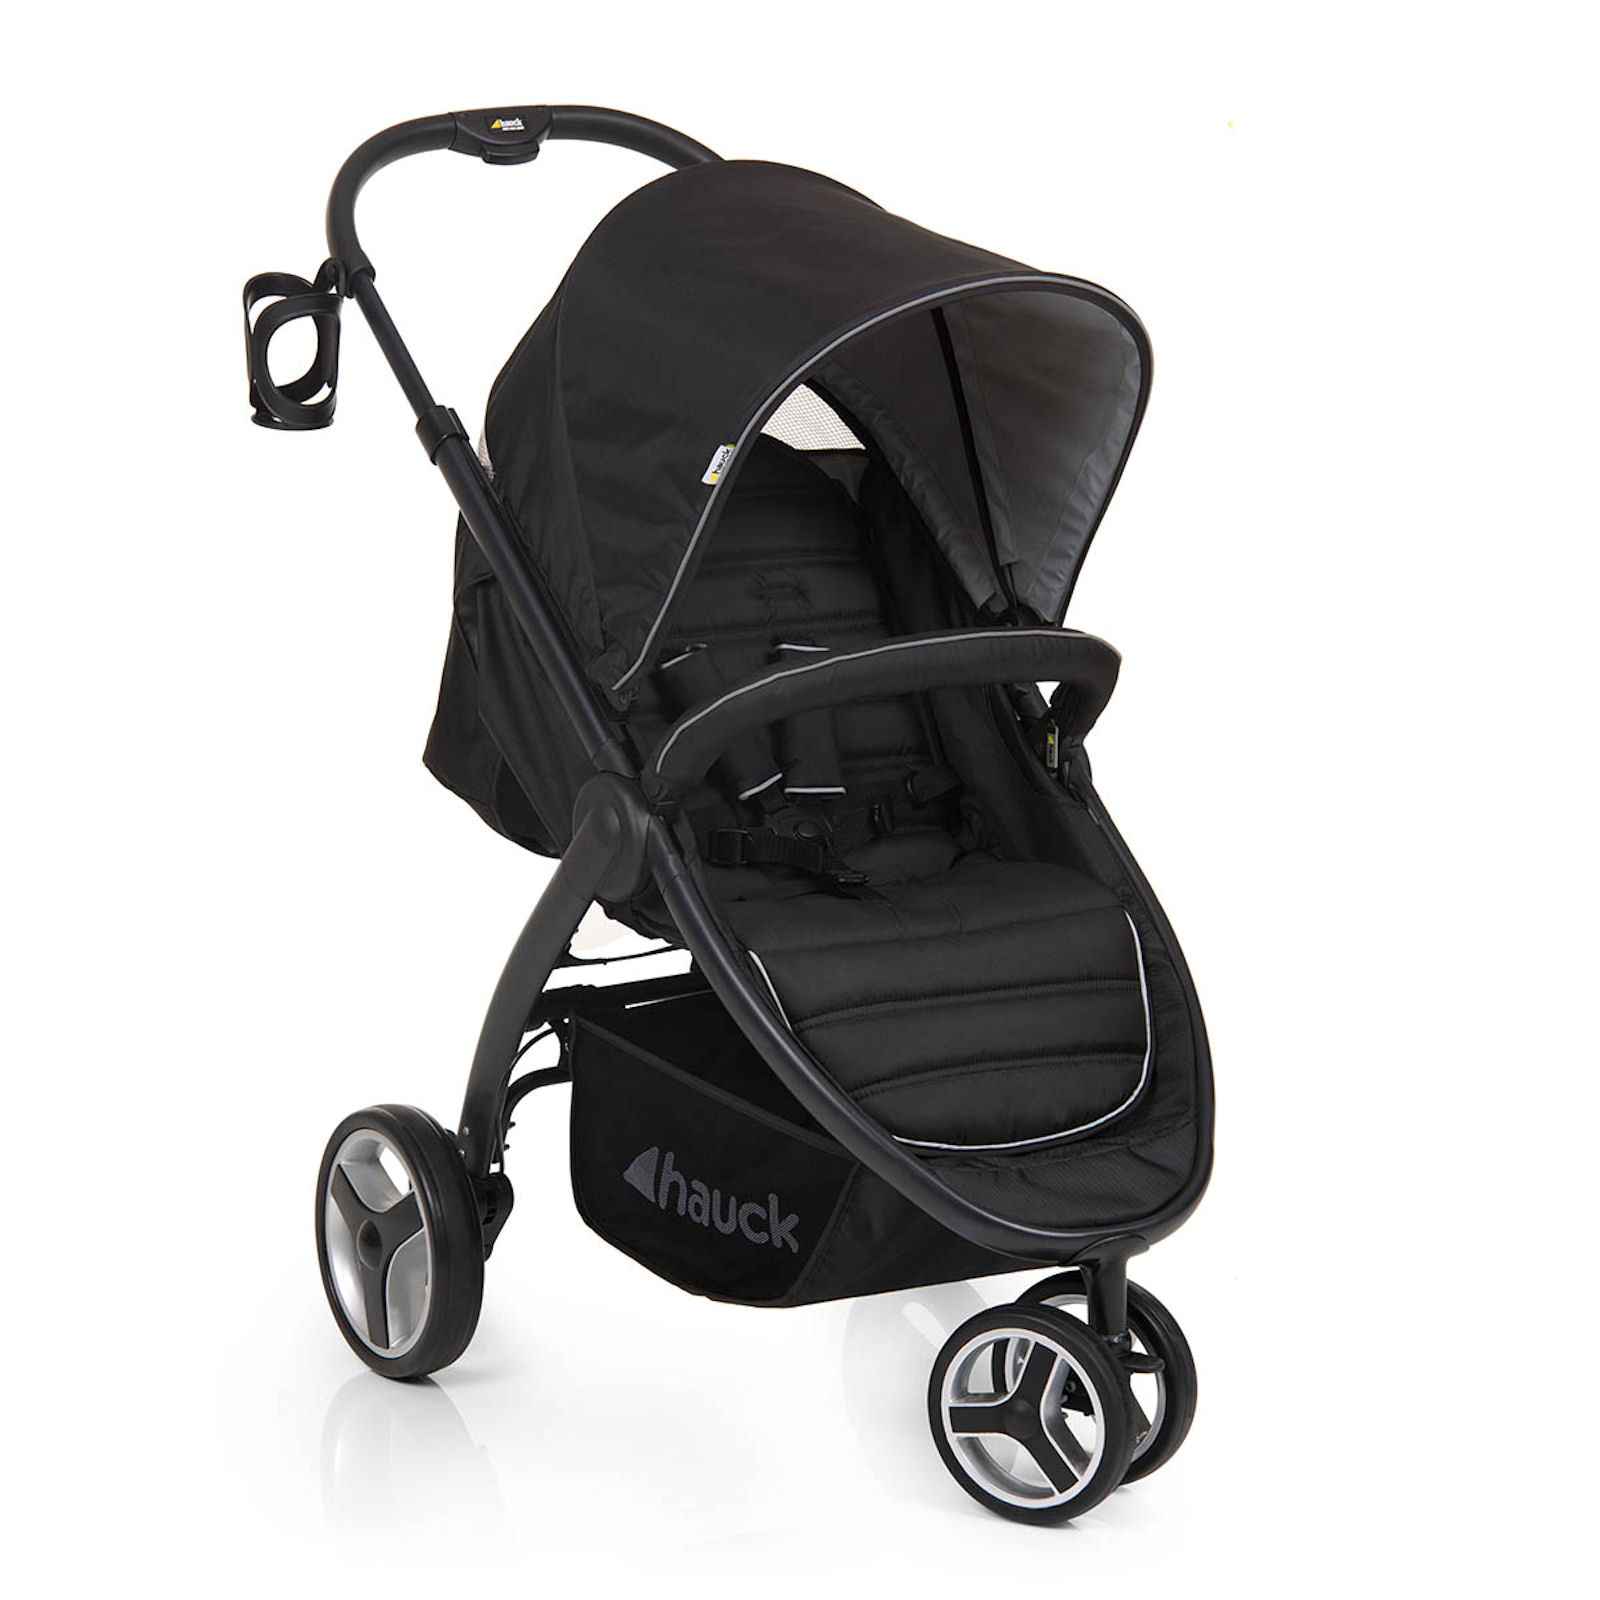 new hauck black lift up 3 pushchair stroller from birth. Black Bedroom Furniture Sets. Home Design Ideas